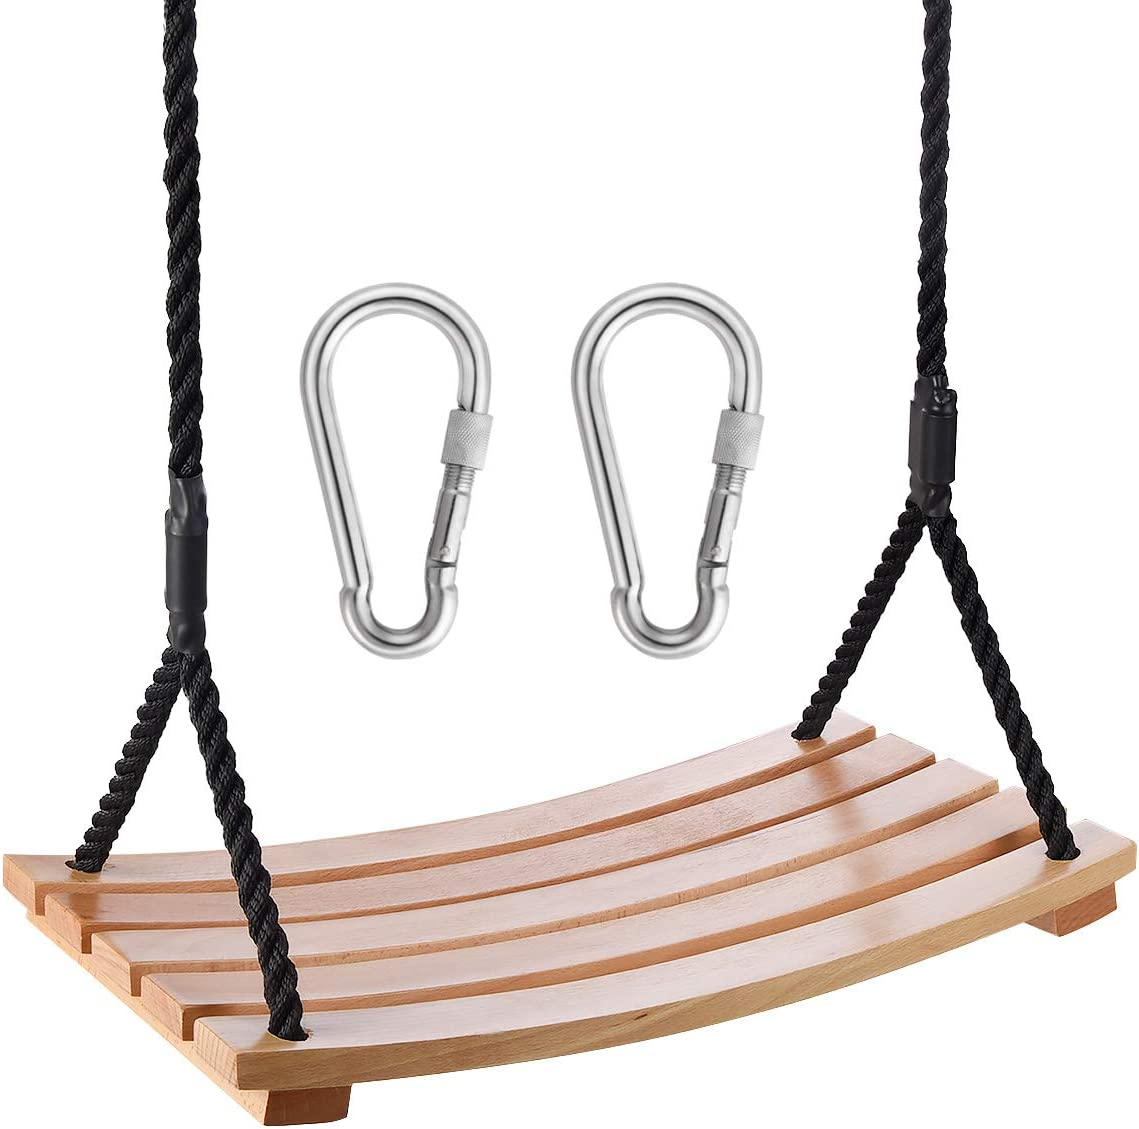 Wood Swing Sets Adult Durable Hanging Tree Swing Seat for Garden Backyard Indoor Outdoor with 100'' Height Adjustable Rope